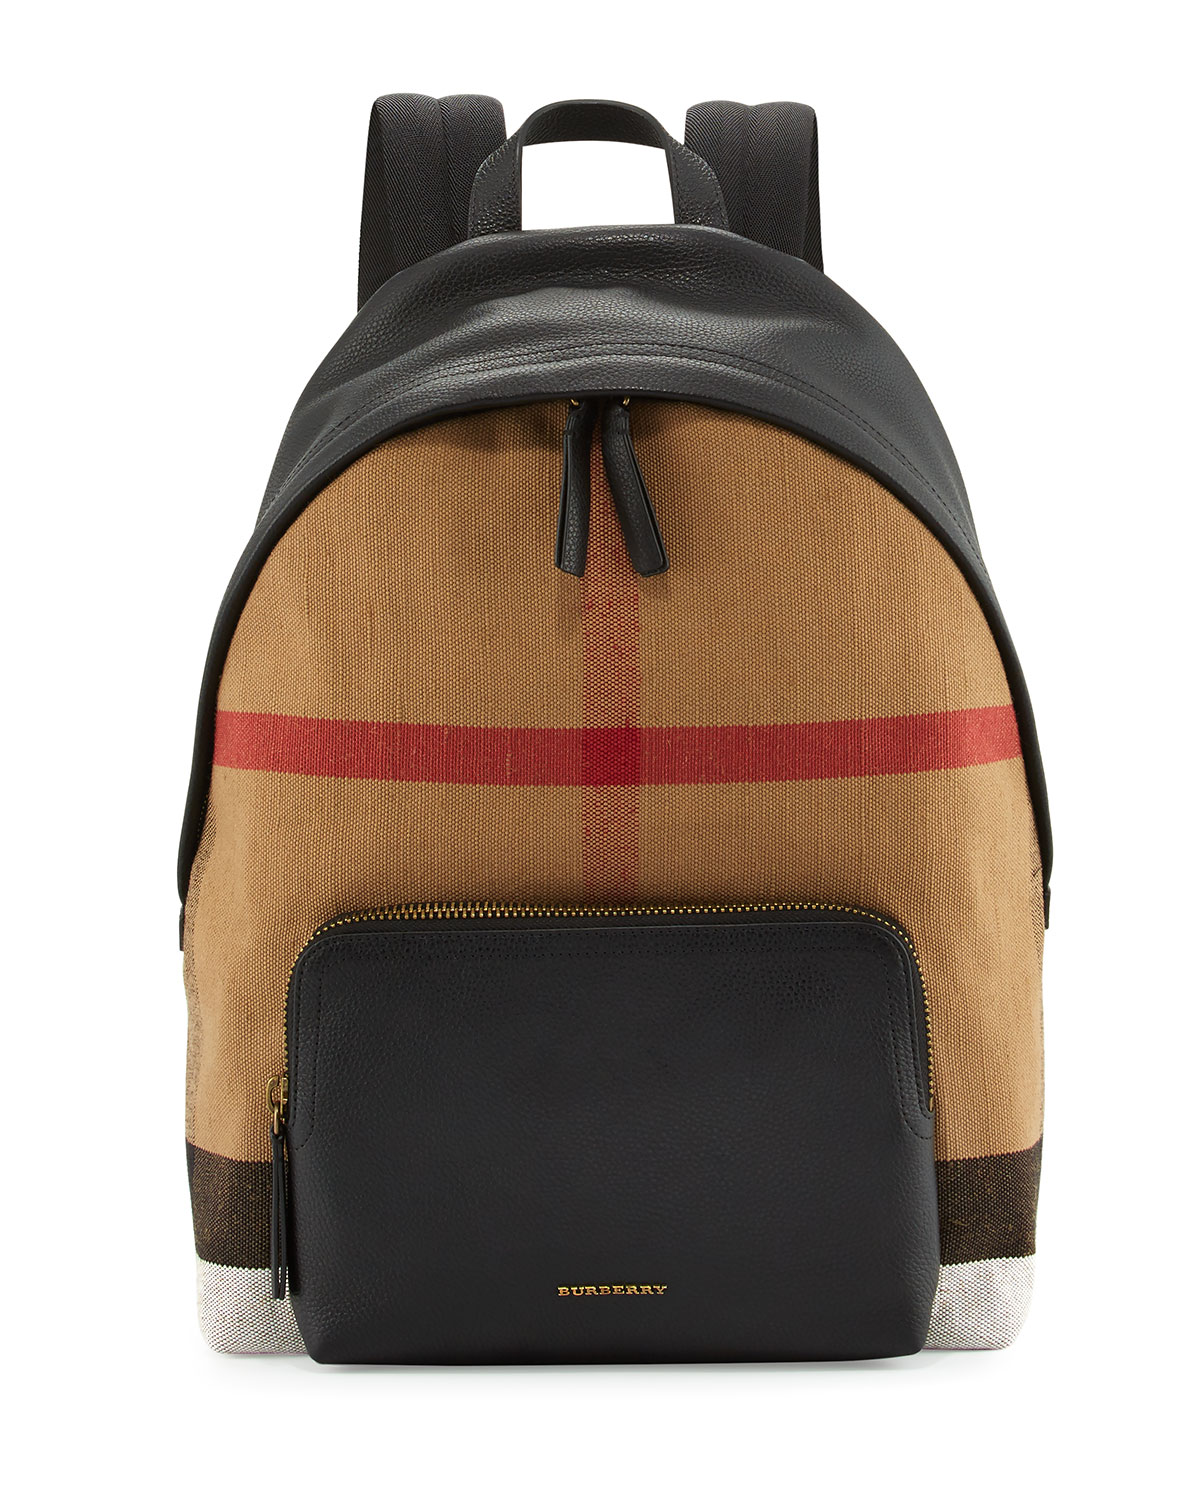 6b2c3ddb0 Burberry Abbeydale Check Canvas & Leather Backpack, Camel/Black ...